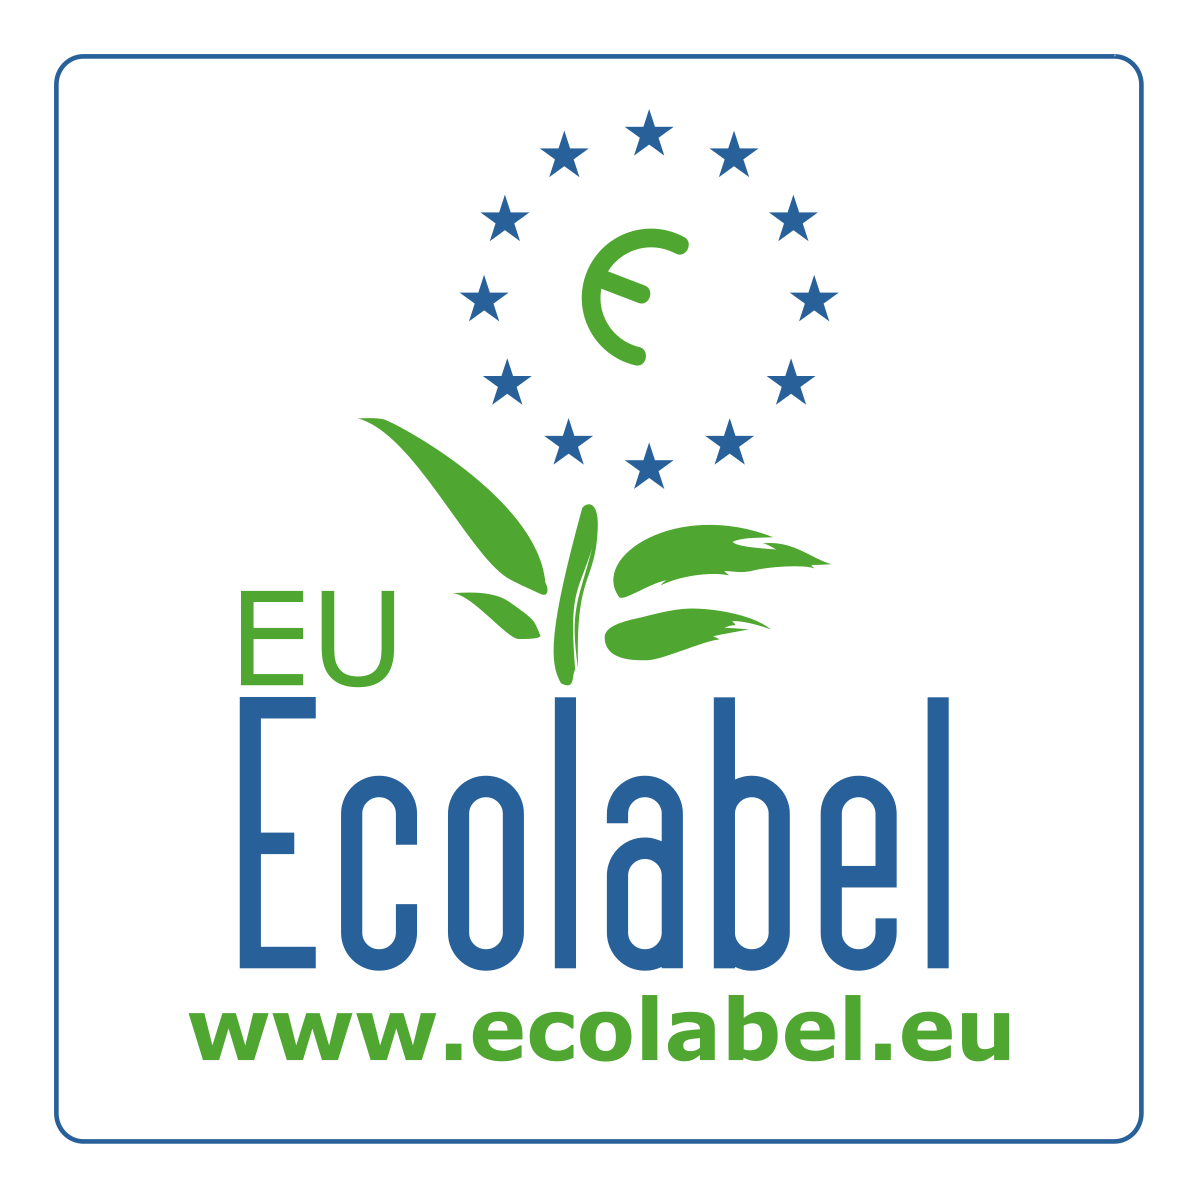 picto ecolabel europeen